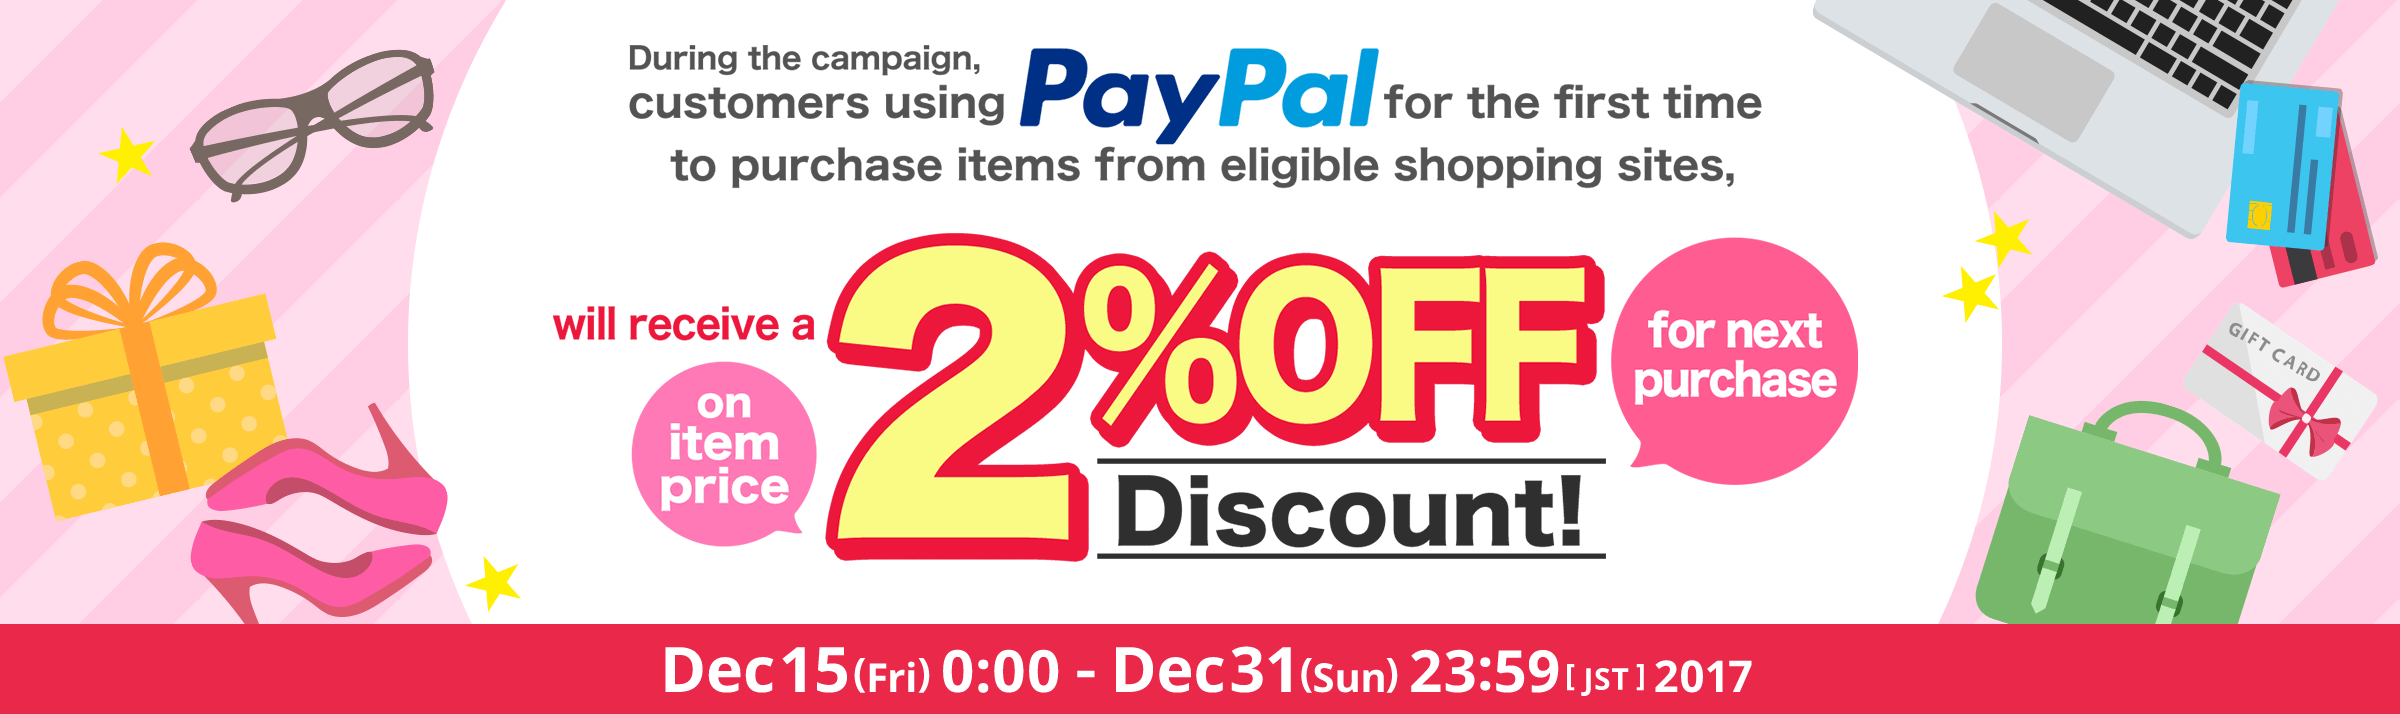 Valid on First Purchase Get a 2% off coupon on item price by purchasing from shopping sites via PayPal